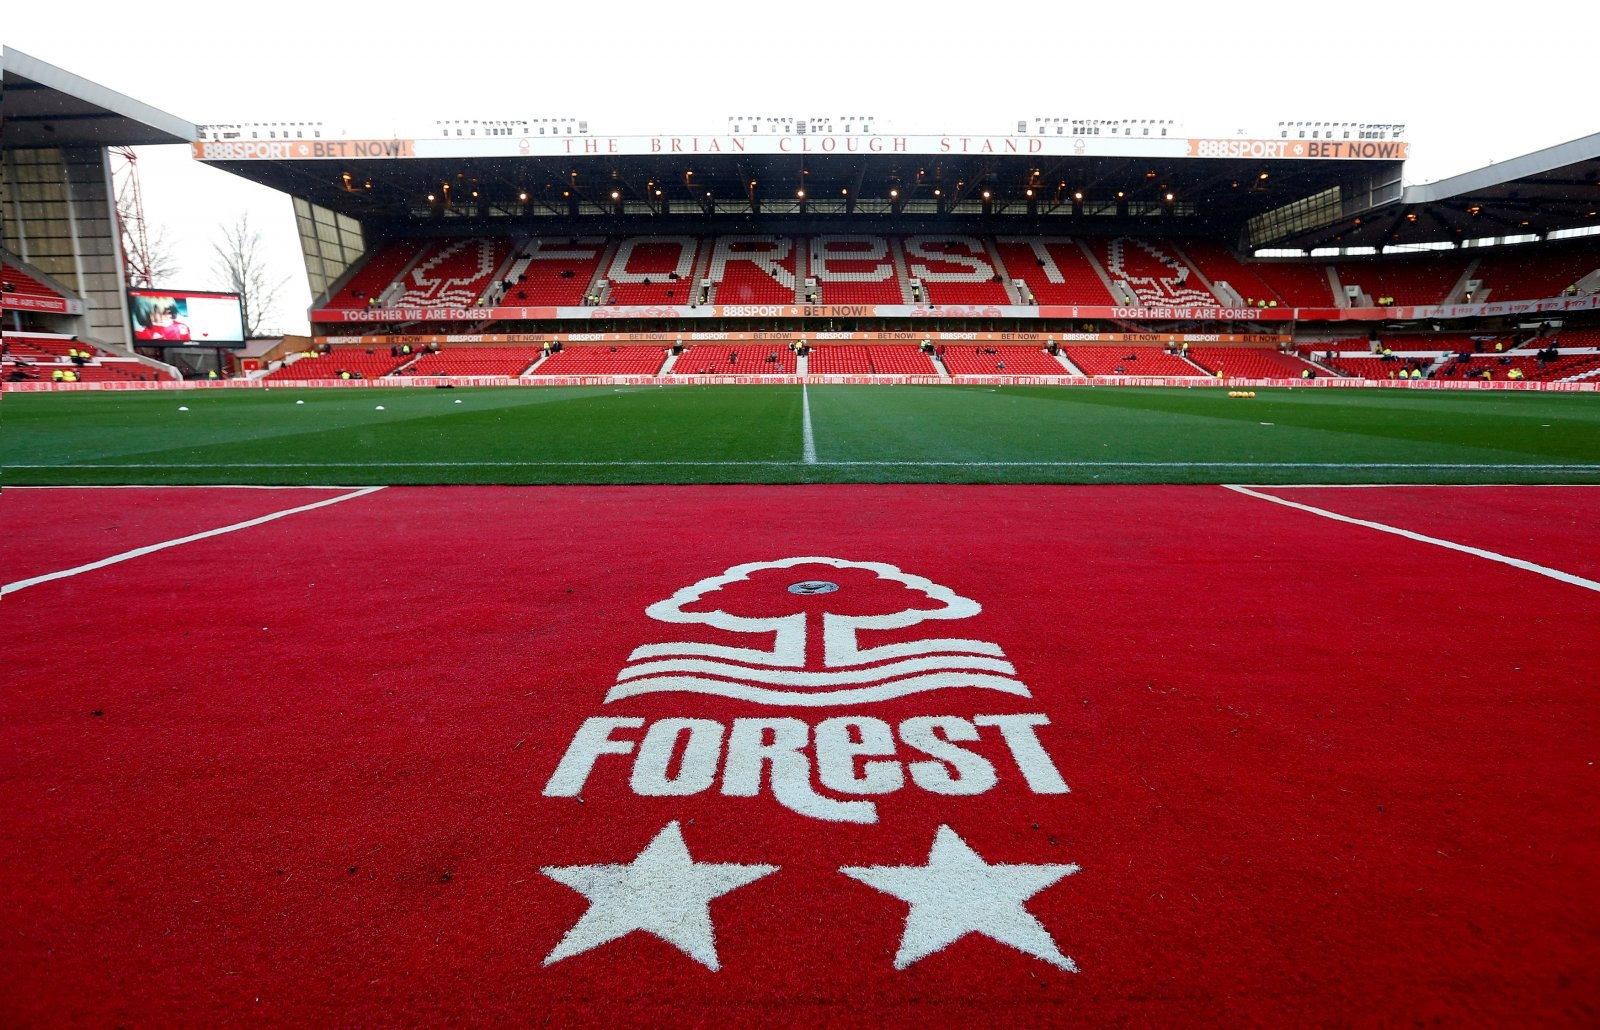 City Ground Nottingham Forest Football Club